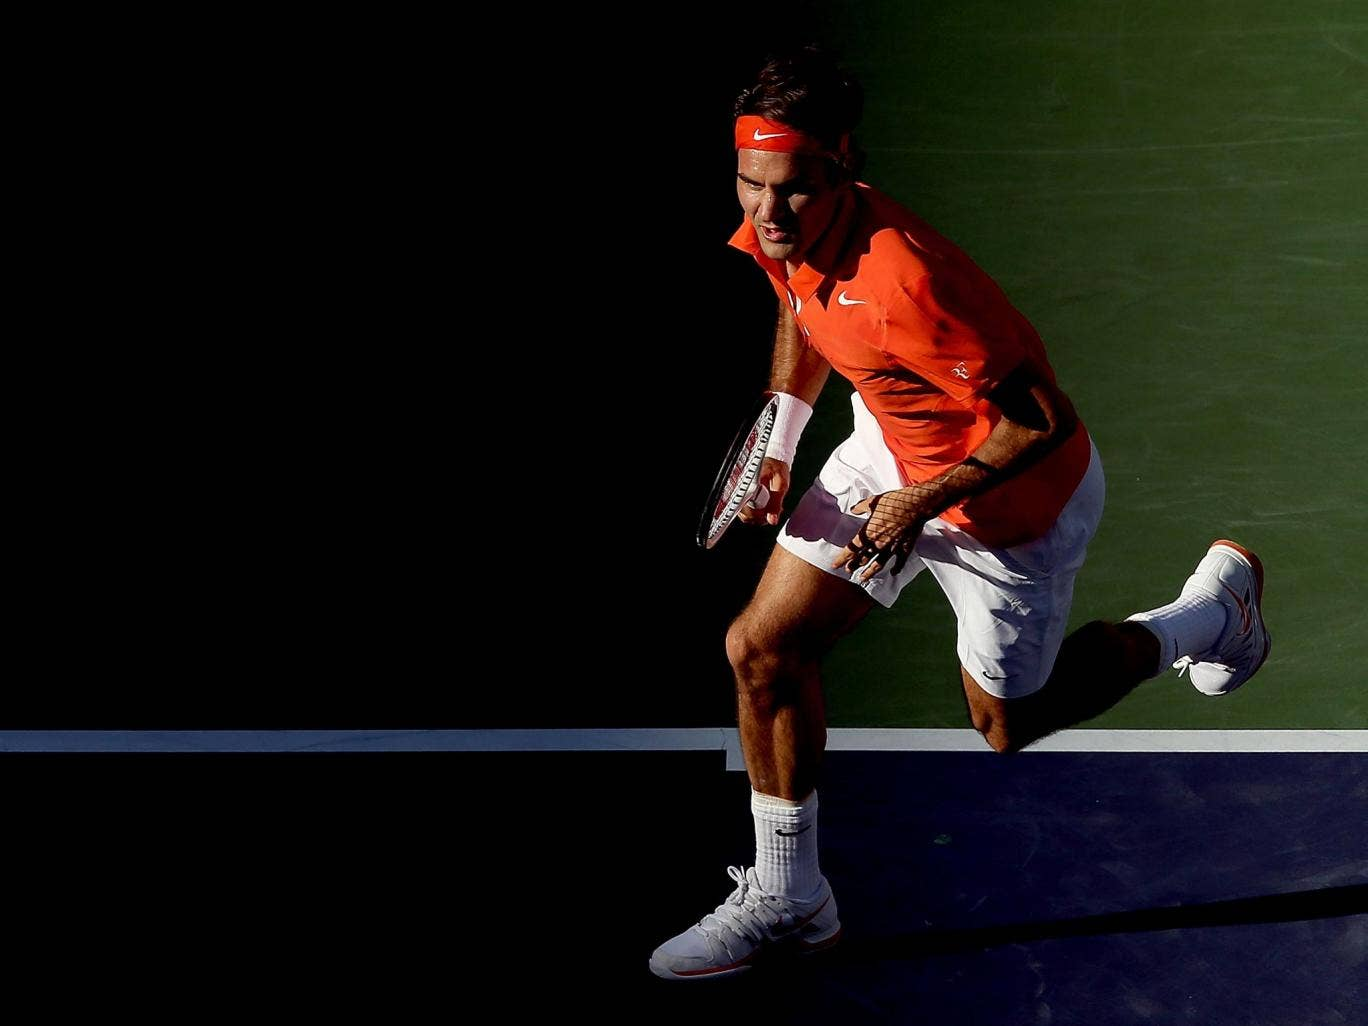 Roger Federer in action at Indian Wells